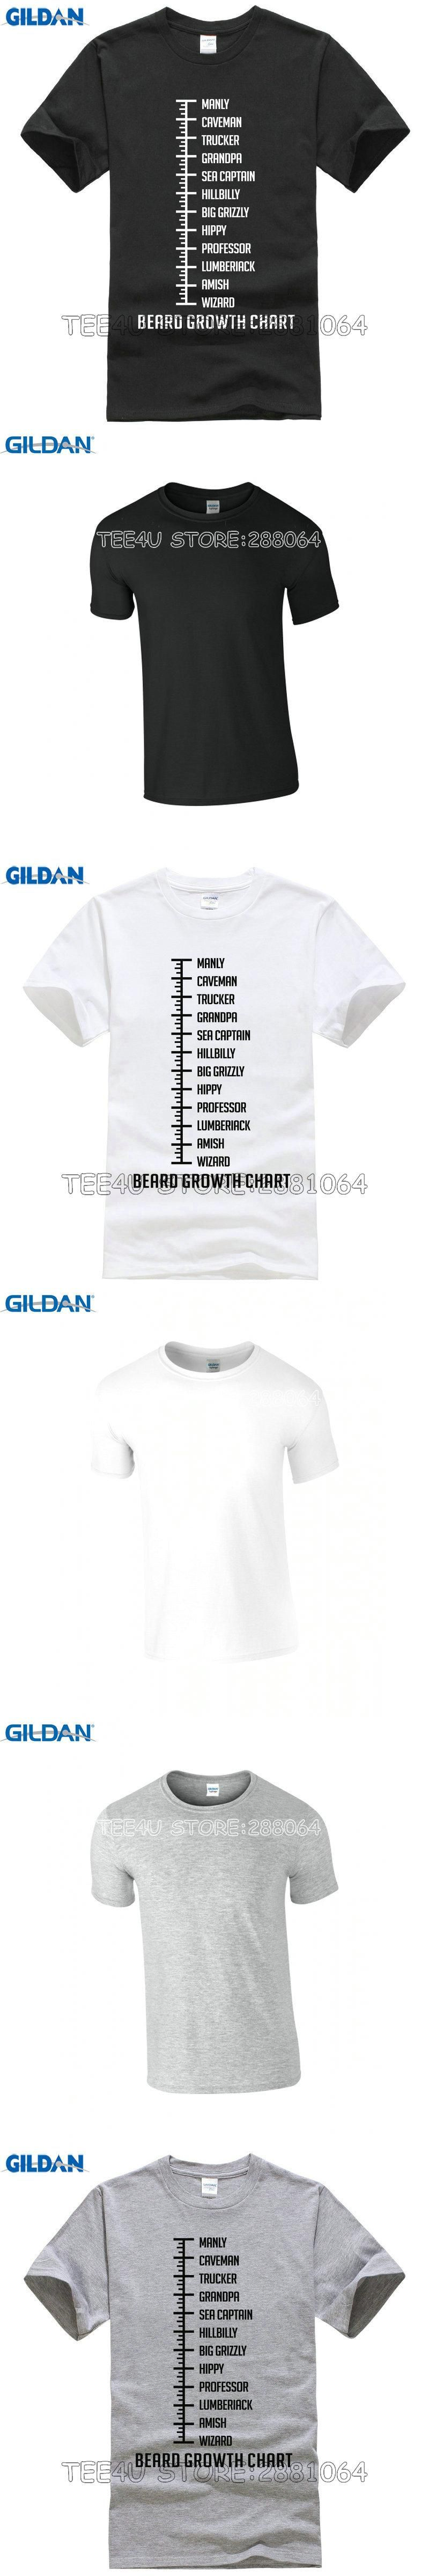 Tee4u personalised t shirts mens short funny crew neck beard tee4u personalised t shirts mens short funny crew neck beard growth chart manly t shirt nvjuhfo Image collections